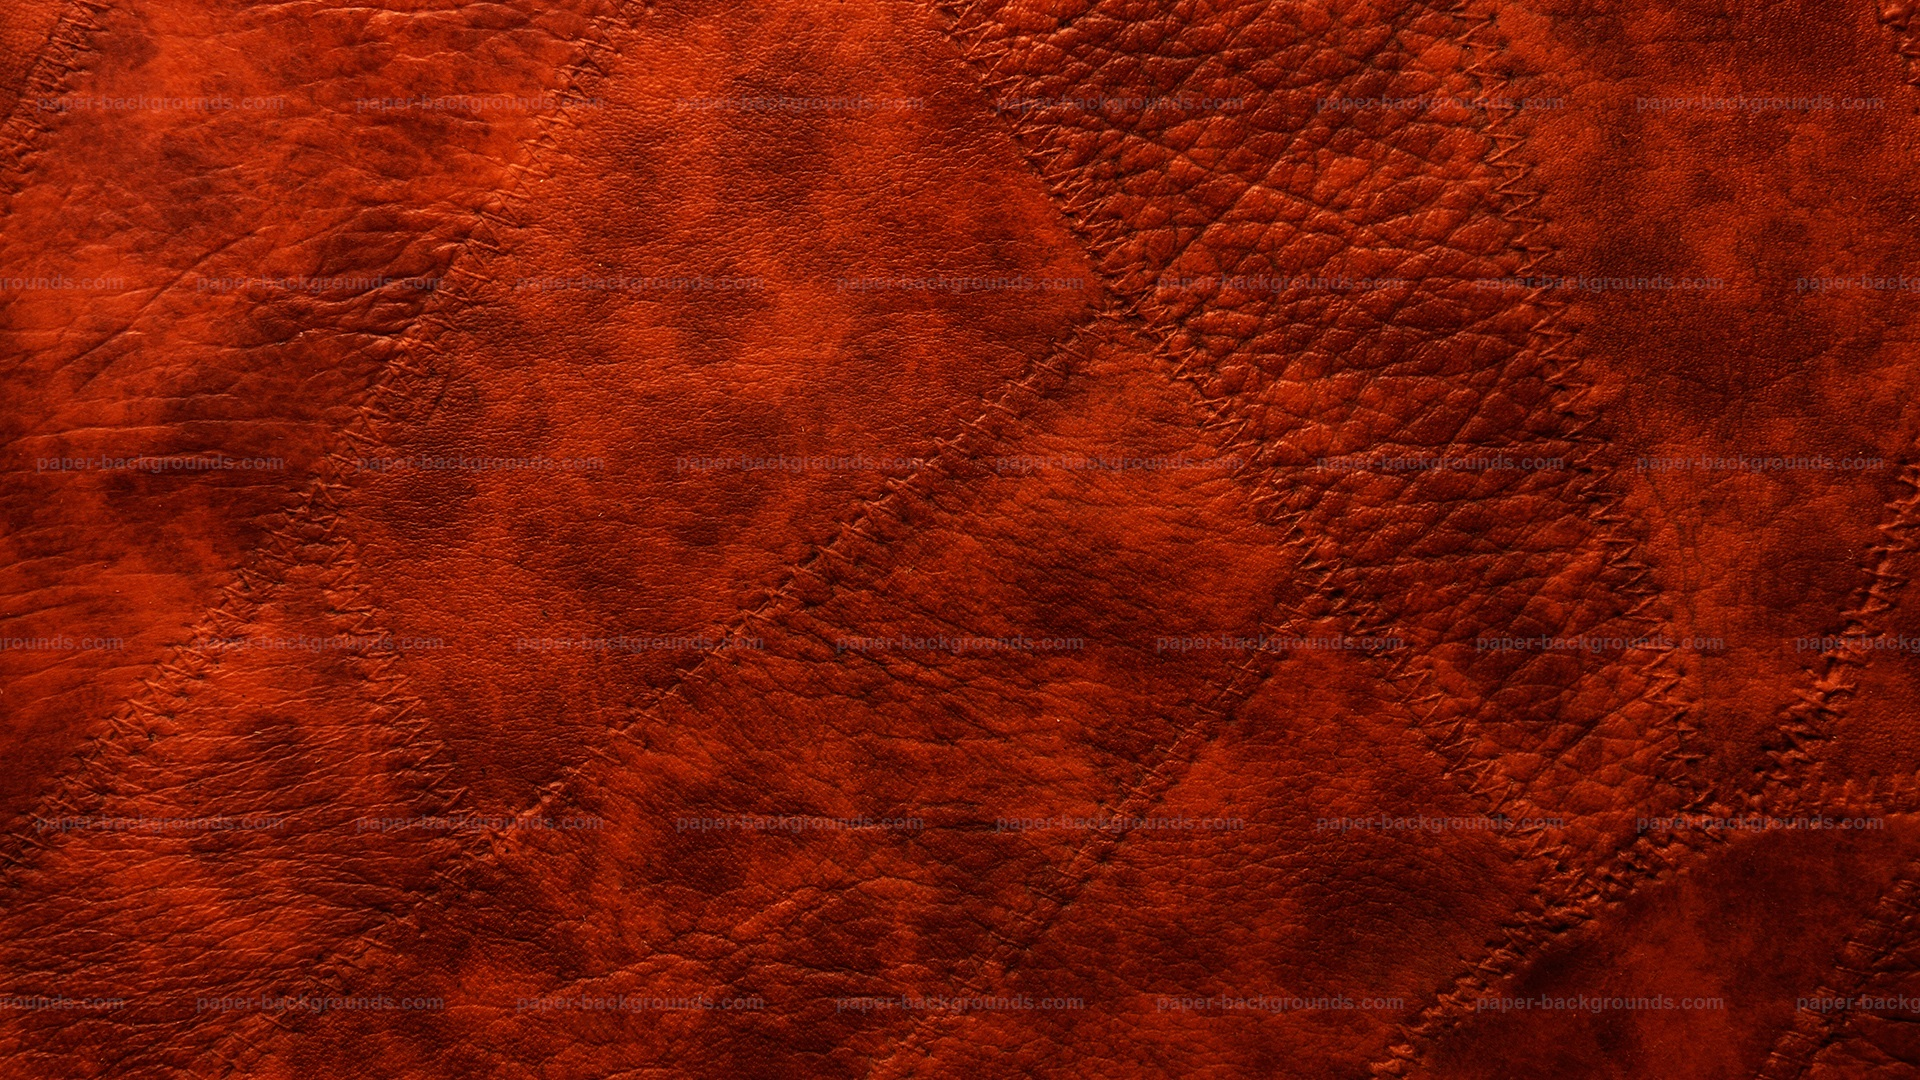 Paper Backgrounds Red Sewed Leather Patches Background Hd